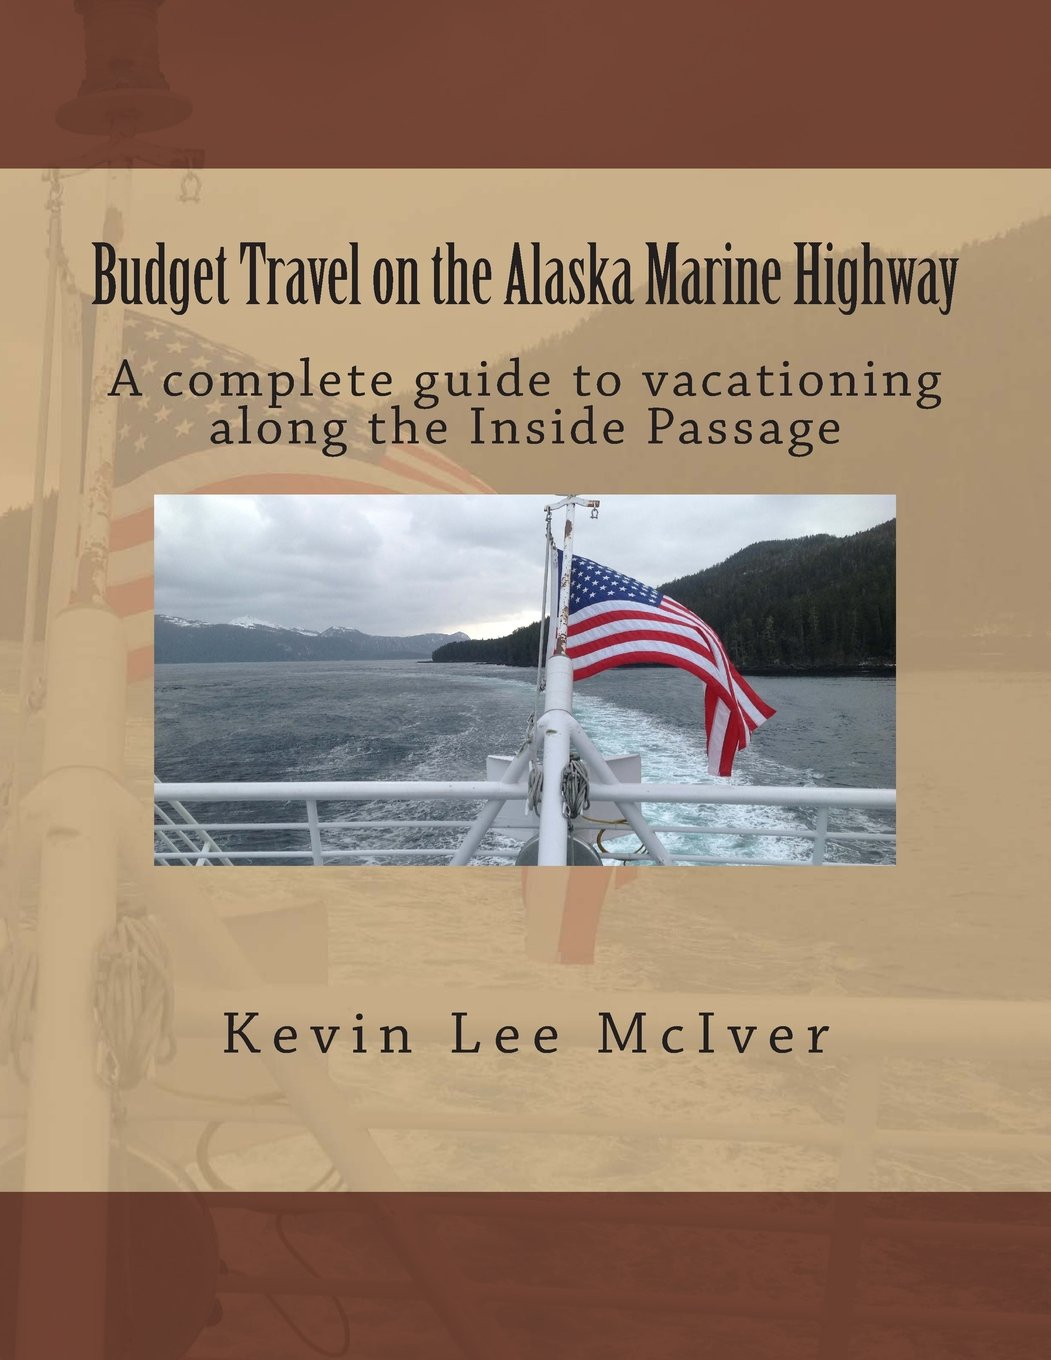 Budget Travel on the Alaska Marine Highway: A complete guide to vacationing along the Inside Passage